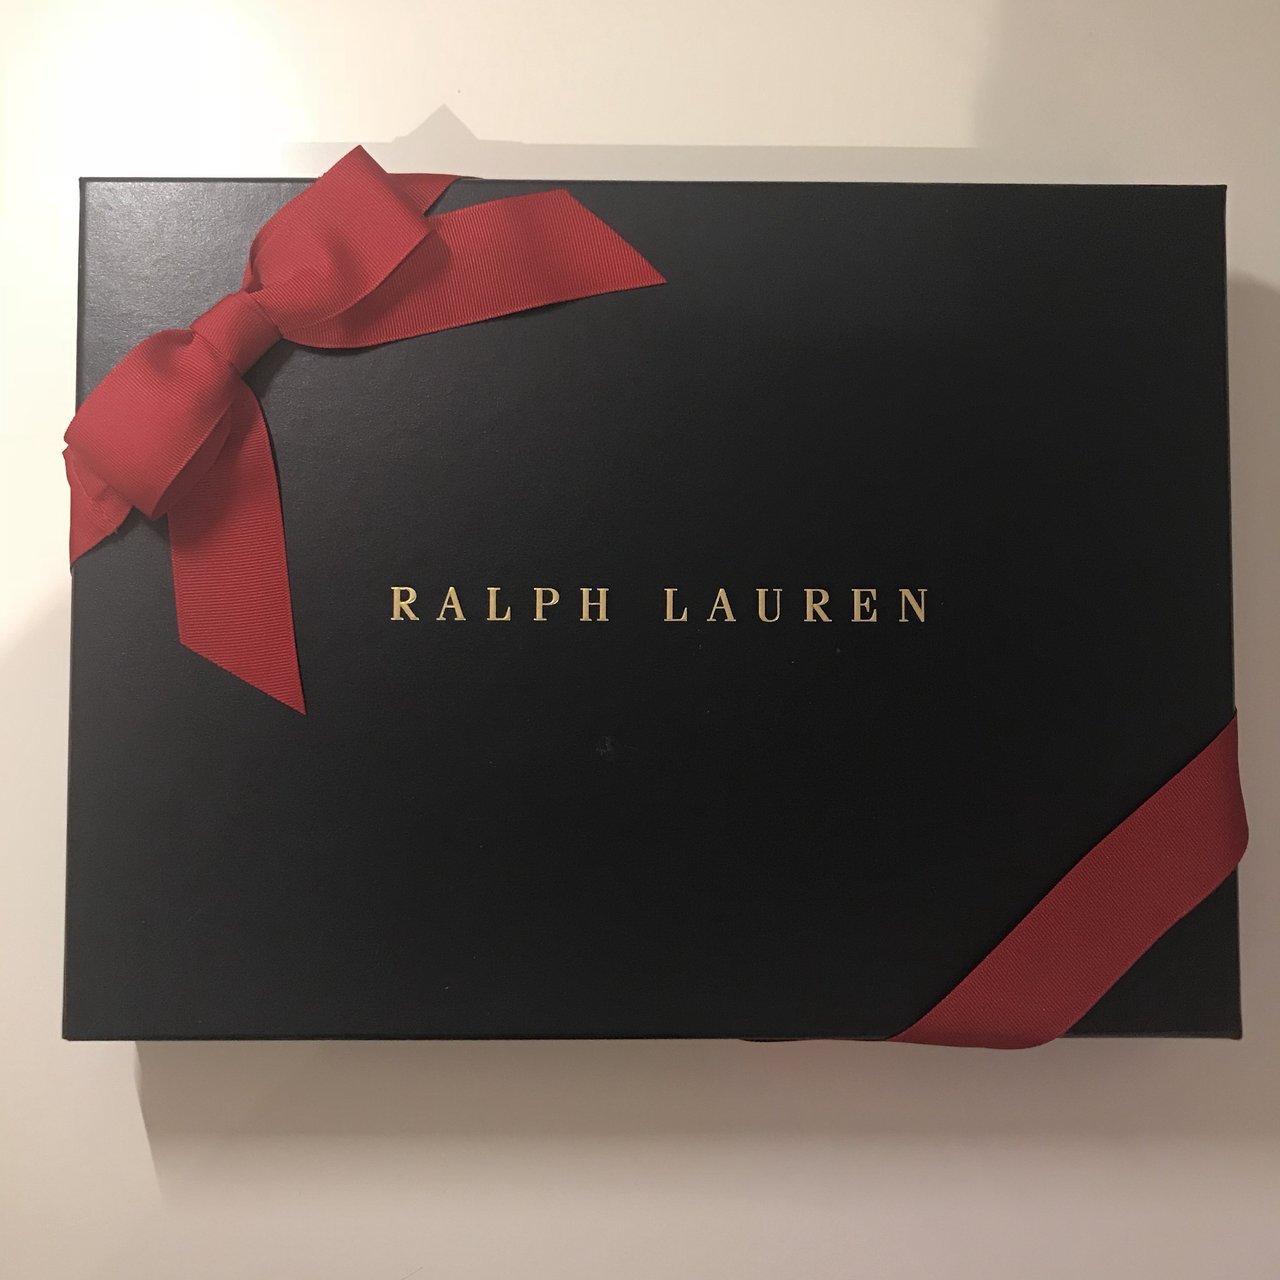 @lstoney. 2 months ago. Kingston upon Thames United Kingdom. Genuine Ralph Lauren Gift Box : ralph lauren gift box - princetonregatta.org